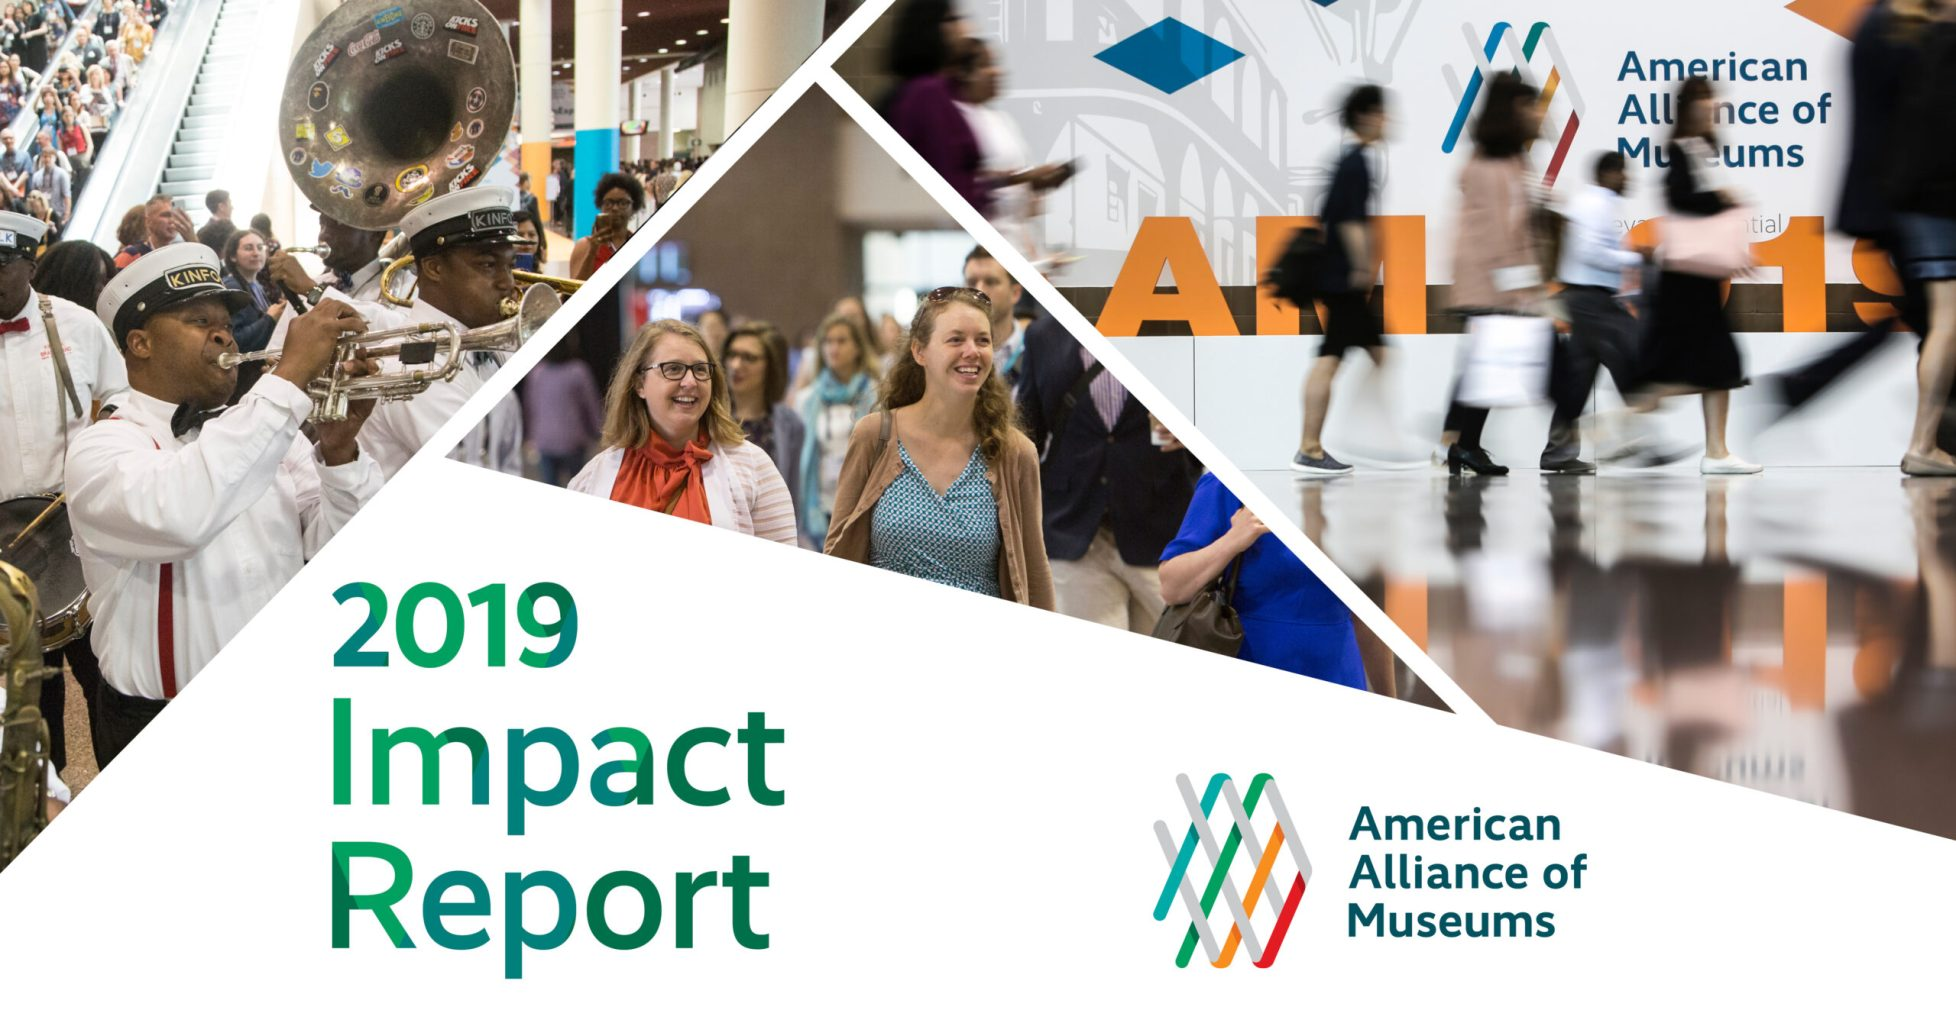 Cover of report showing three images of attendees to 2019 Annual Meeting in New Orleans. Image one shows a crowd of attendees coming down an escalator at the convention center behind a jazz band, and the other two images show people walking the hall near the registration desk.